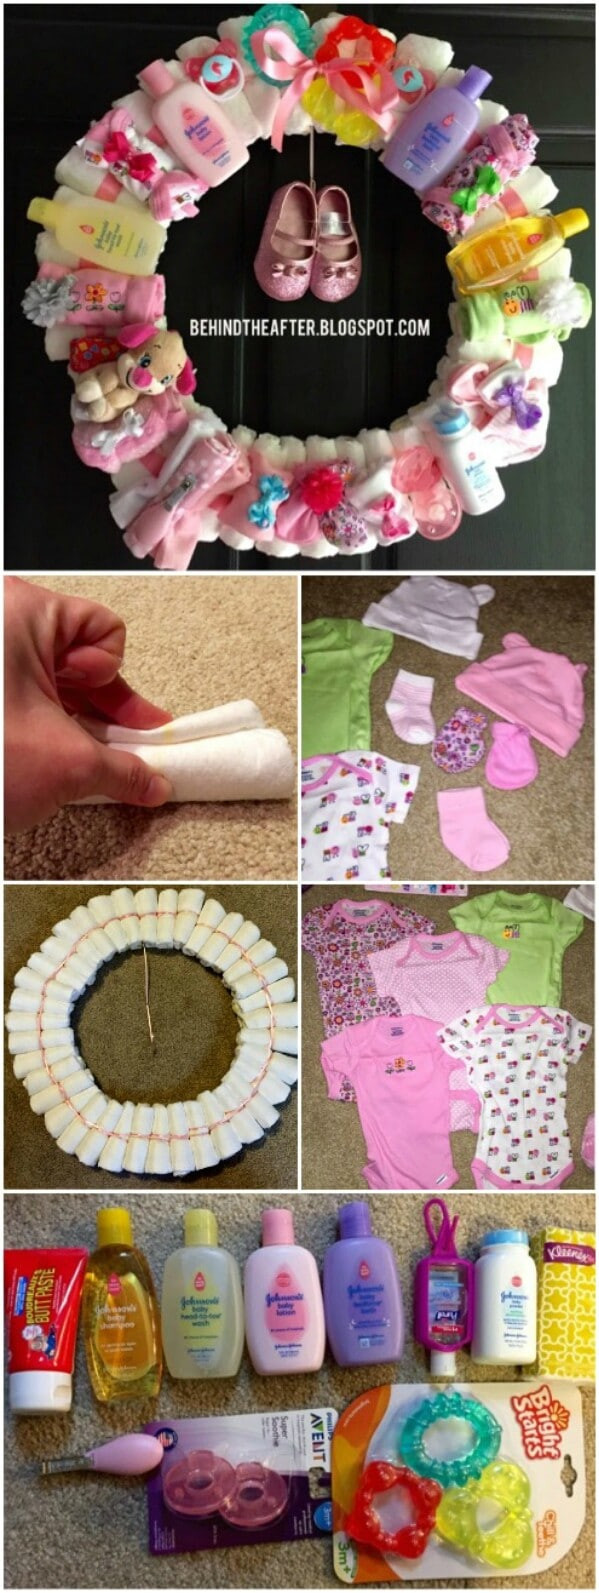 Craft Ideas For Baby Shower Decorations  25 Enchantingly Adorable Baby Shower Gift Ideas That Will